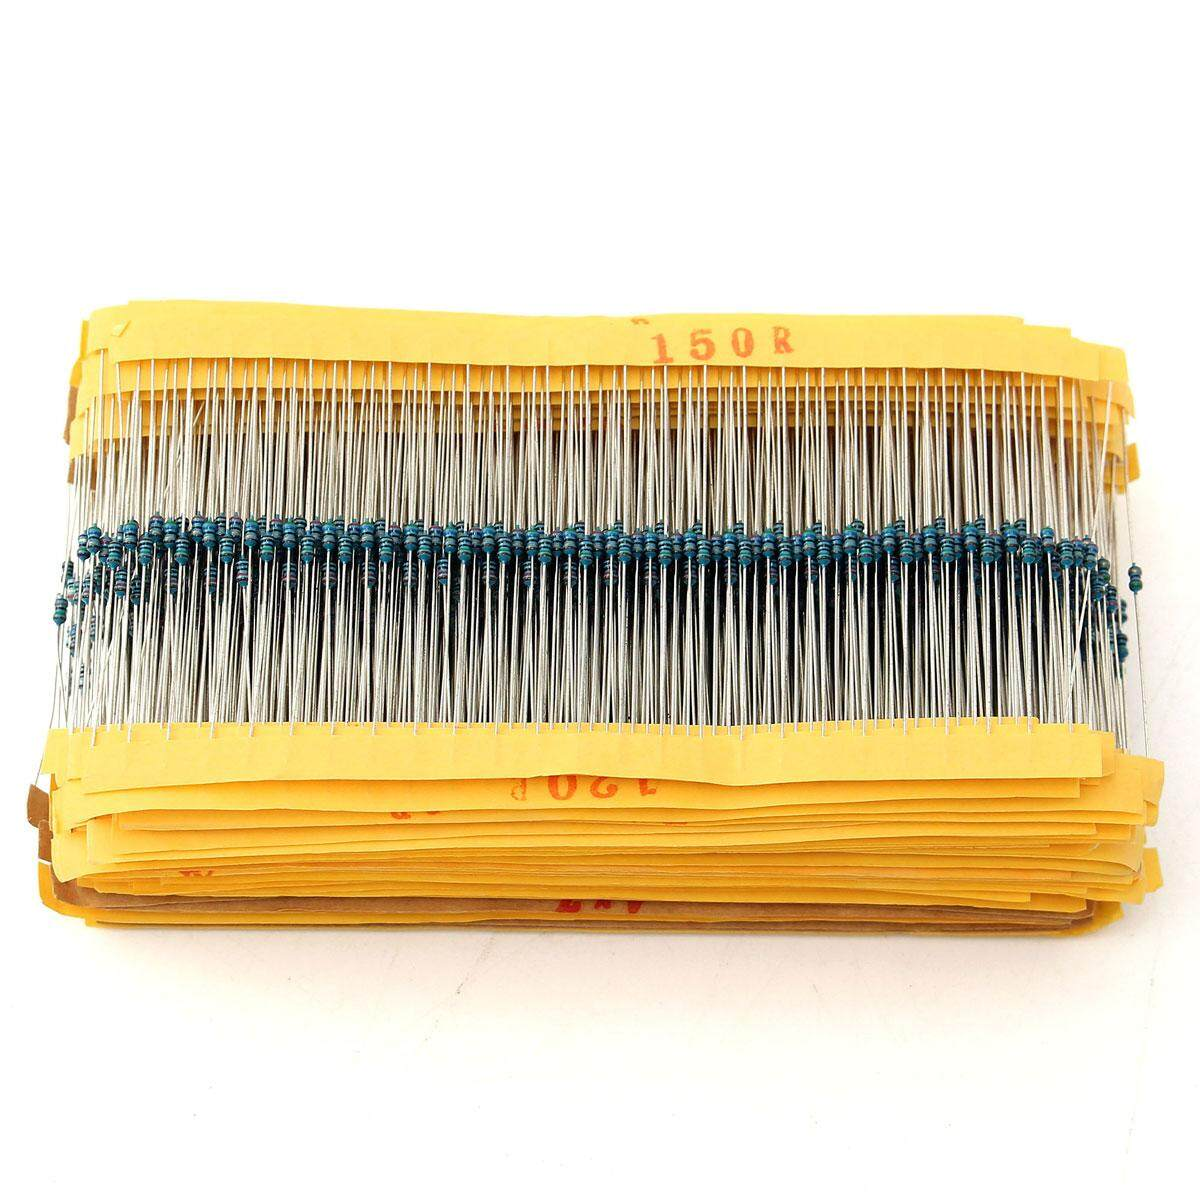 2425pcs Metal Film Resistor 1% 1/8w 0.125w Resistor Assortment Kit Assorted Kit - Intl By Teamwin.